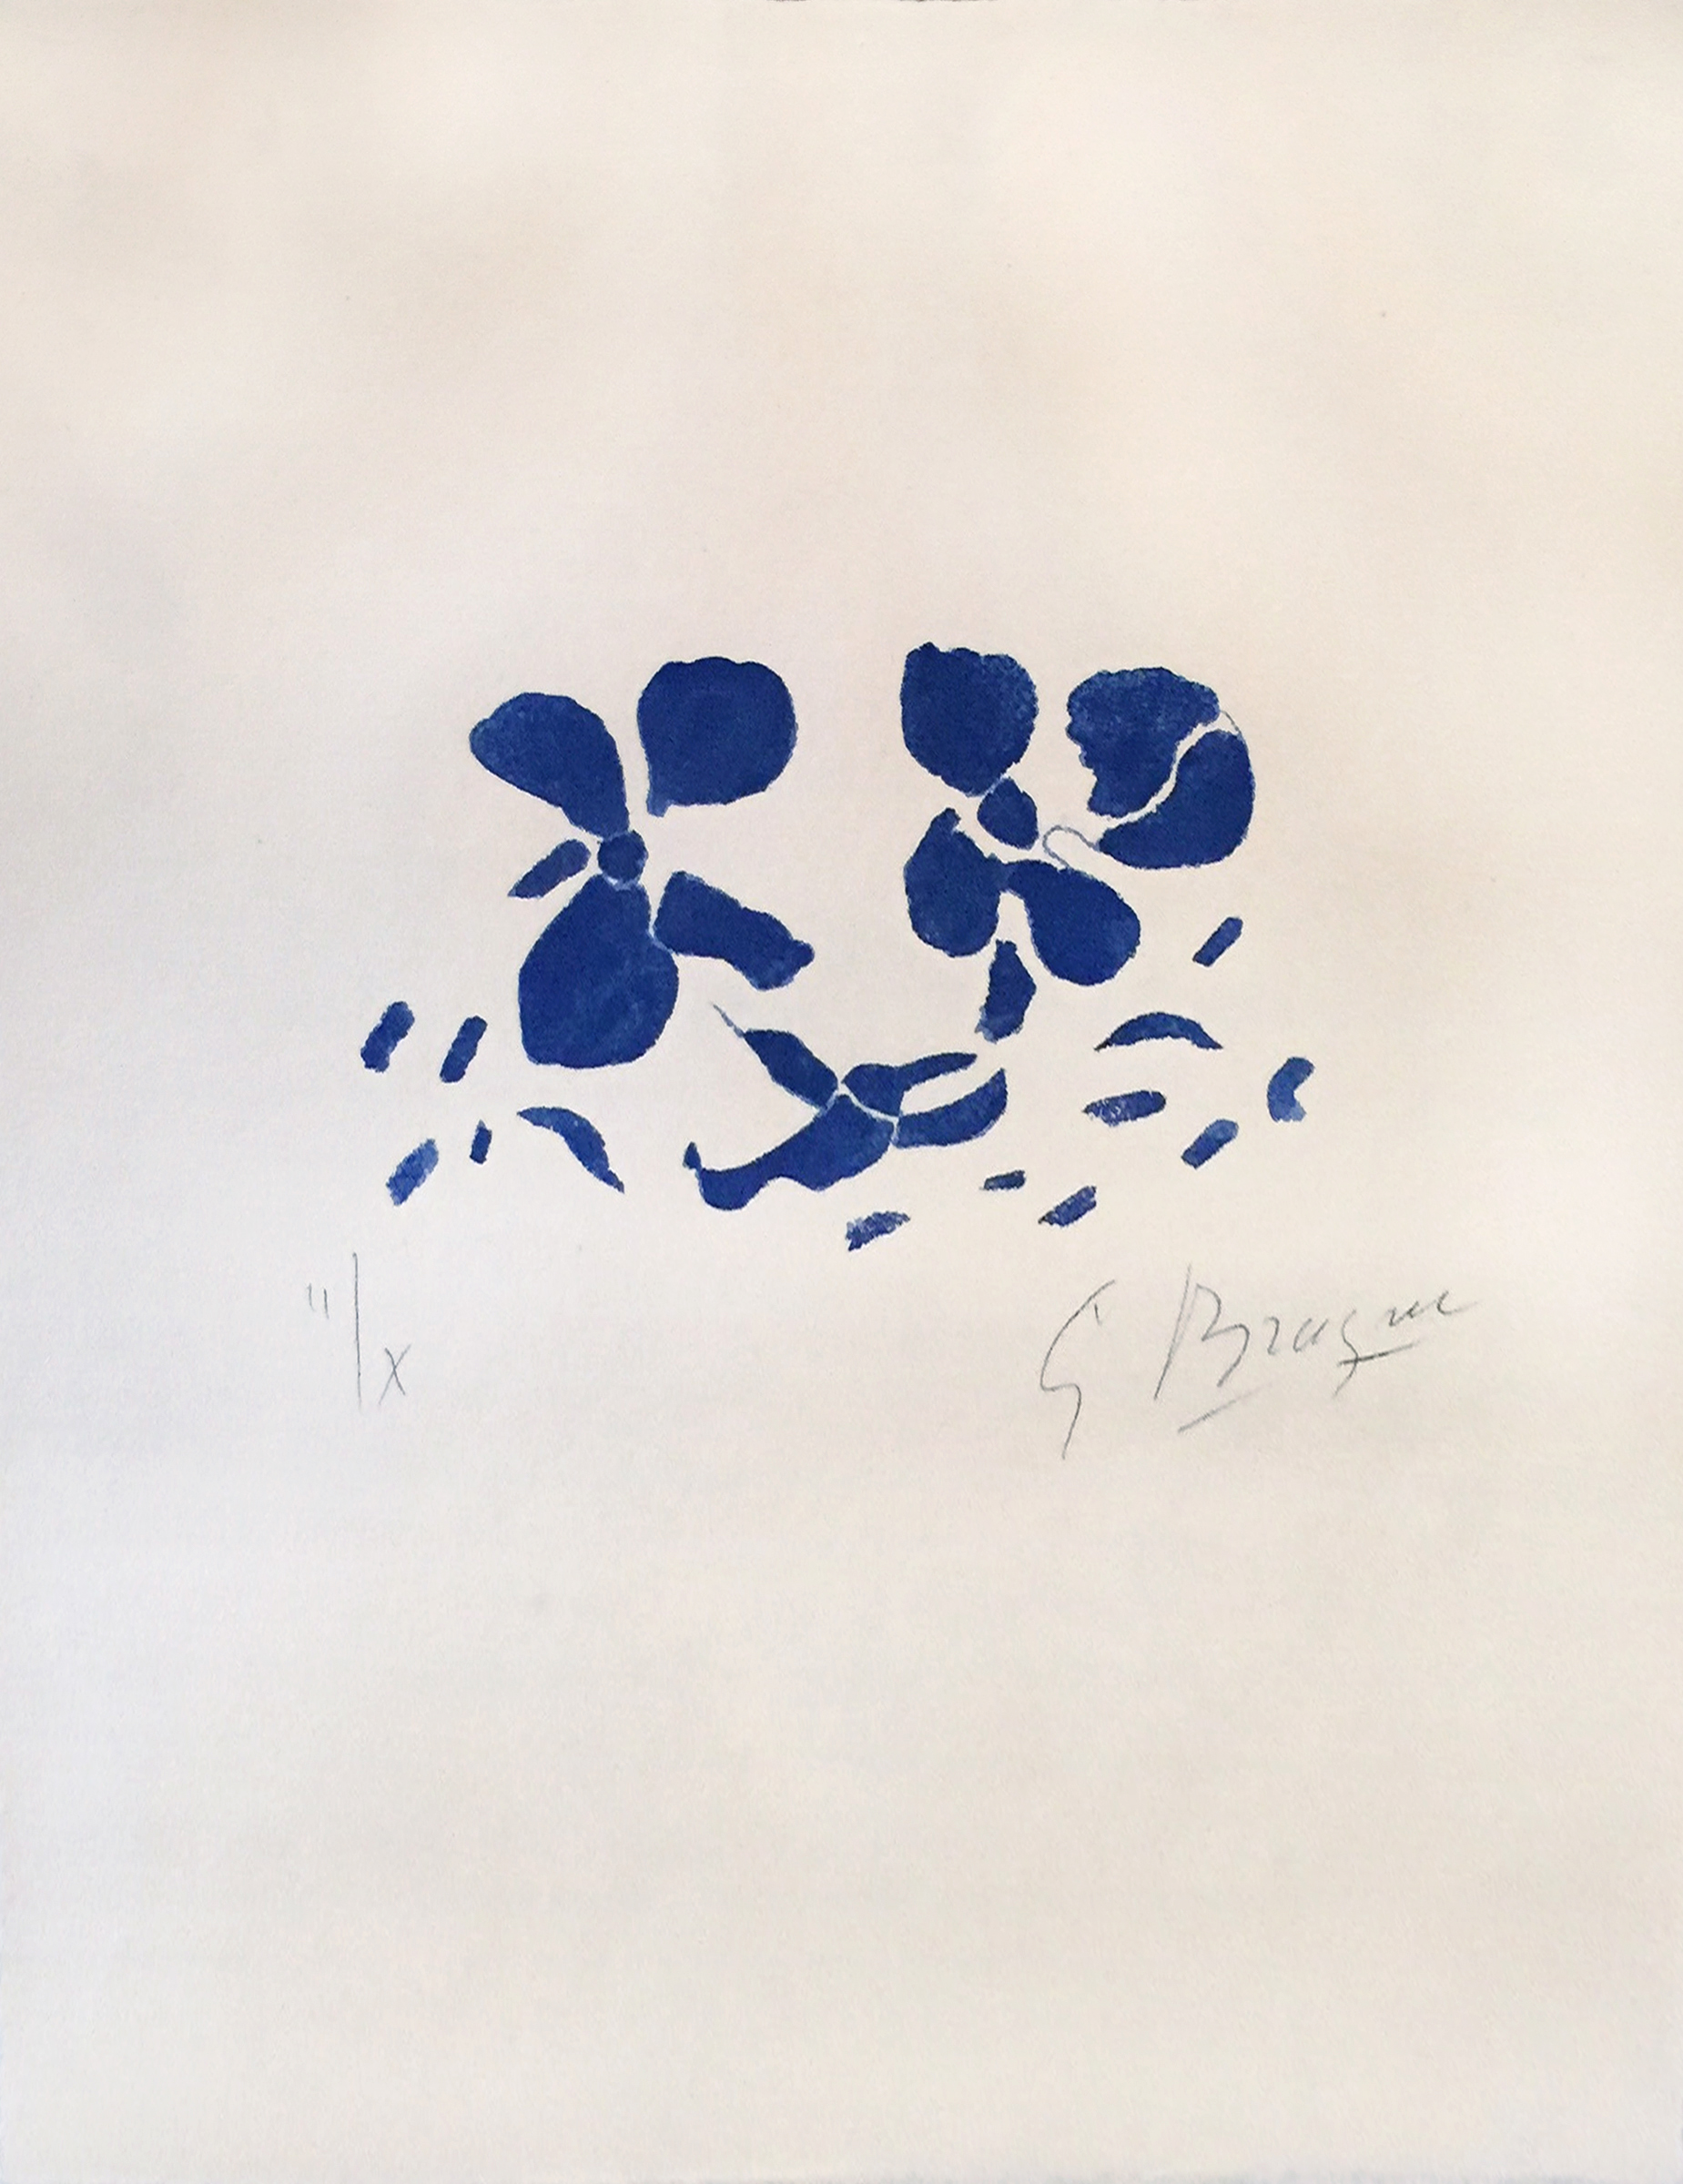 Fleurs Bleues (ed. 2 of 10), 1962, 14.25 x 18.5 inches, Color Woodcut on Japon nacre paper (Sold)